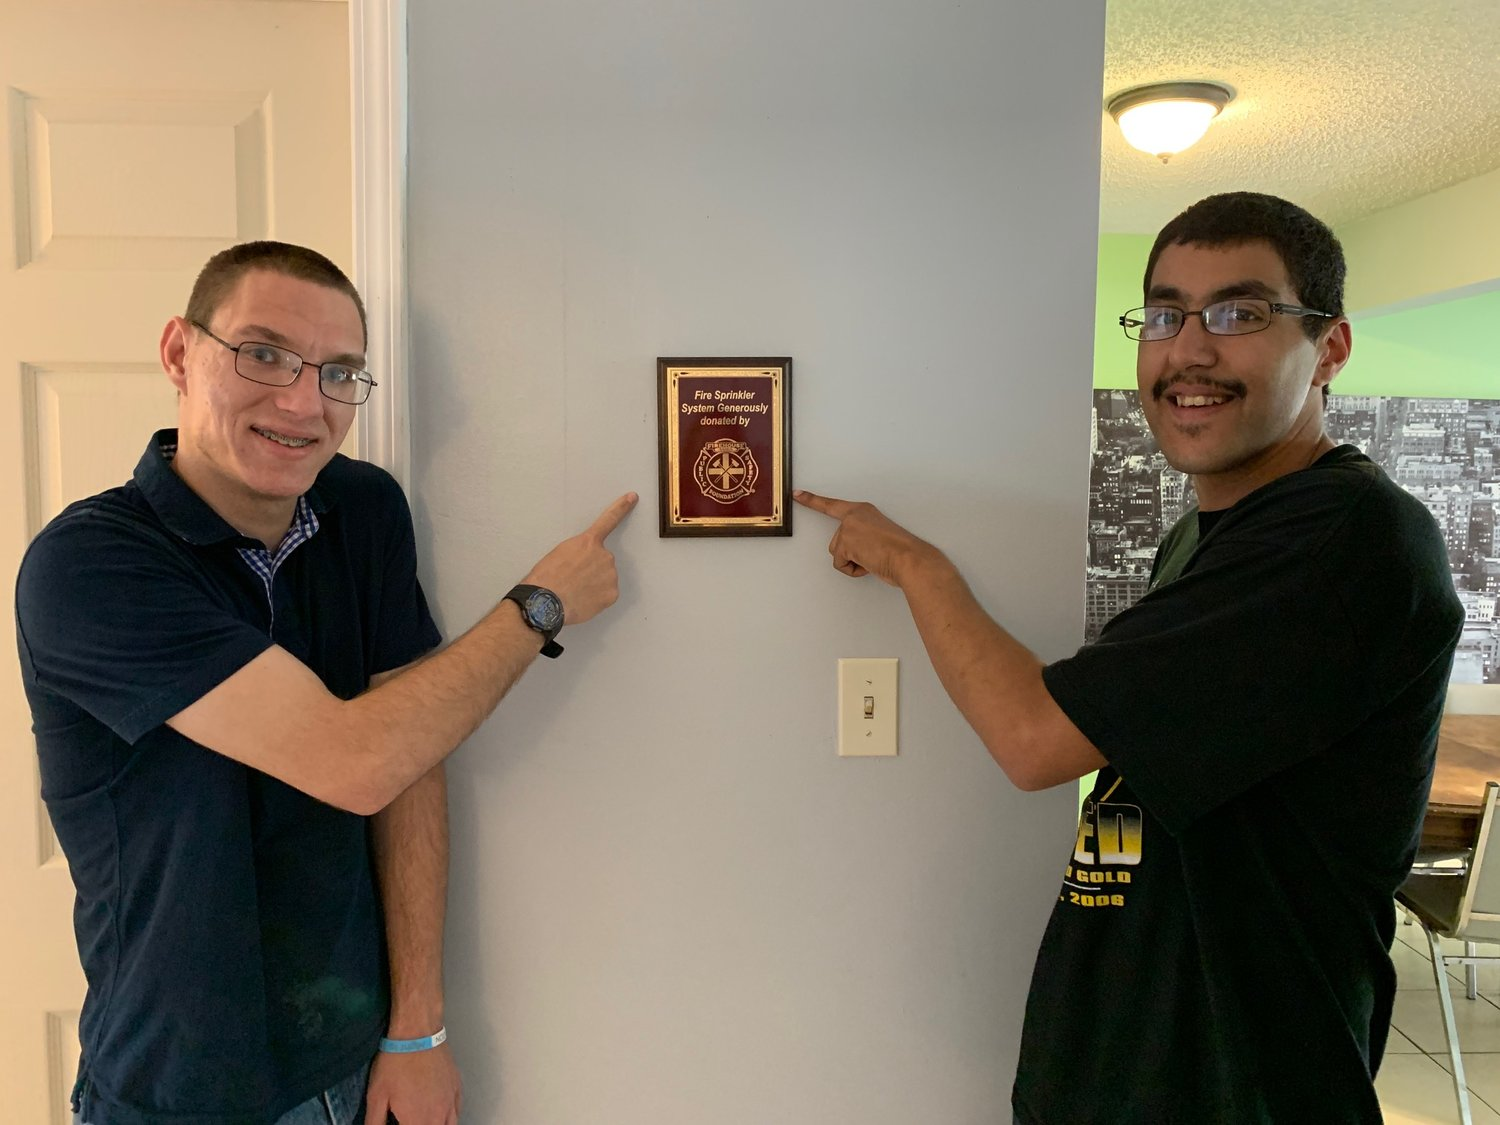 Residents of Angelwood pose with a plaque lauding a donation from the Firehouse Subs Public Safety Foundation to install an automatic fire sprinkler system at the nonprofit's residential group home.